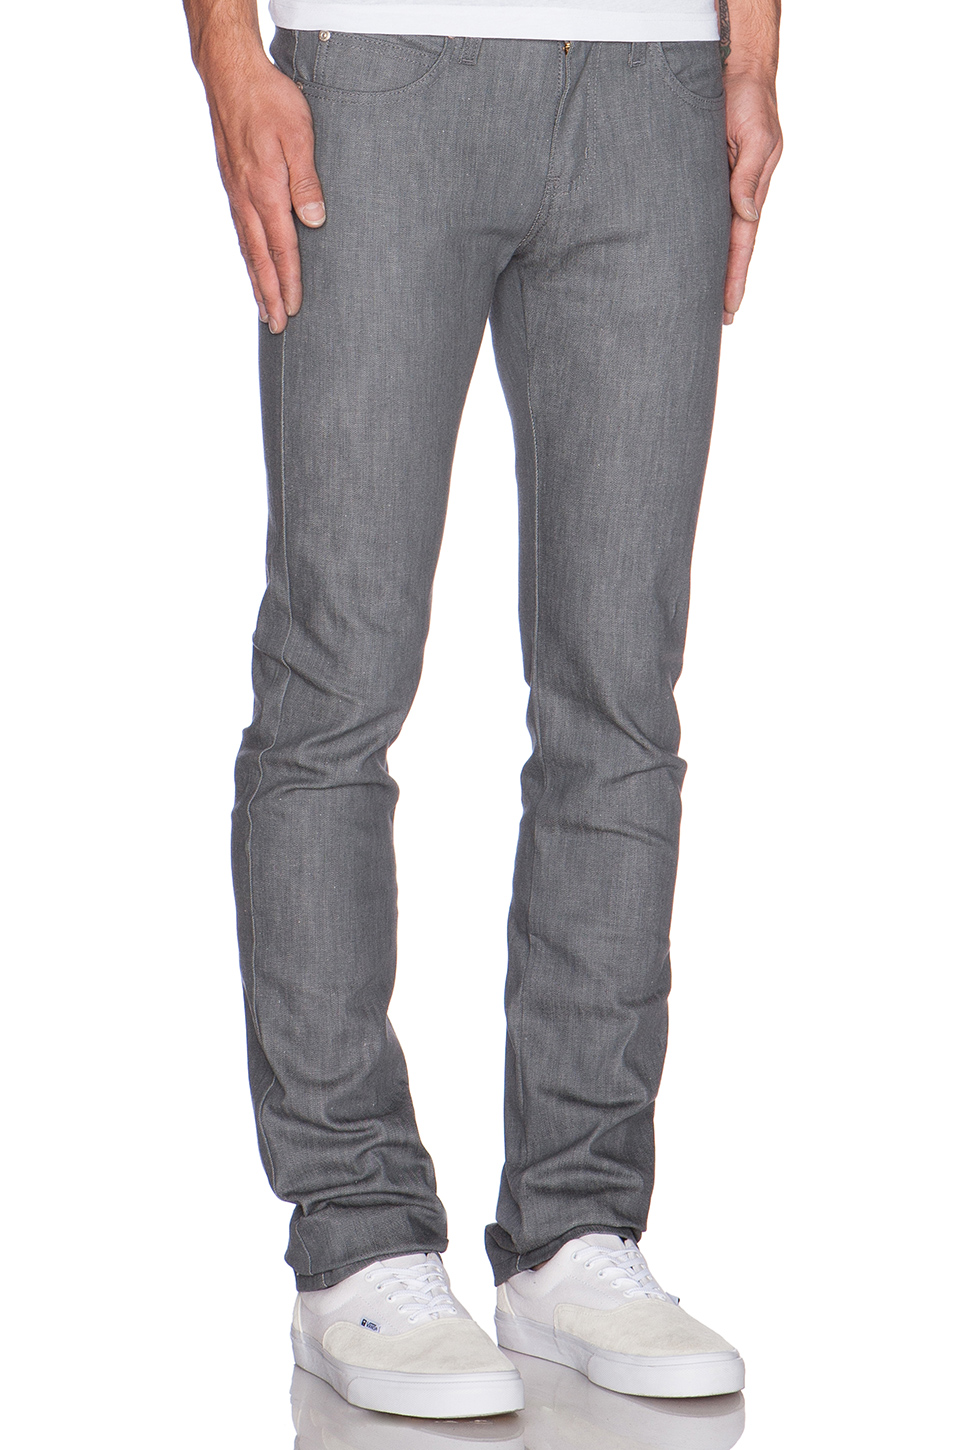 Naked & Famous Denim Skinny Guy in 12oz Grey Stretch